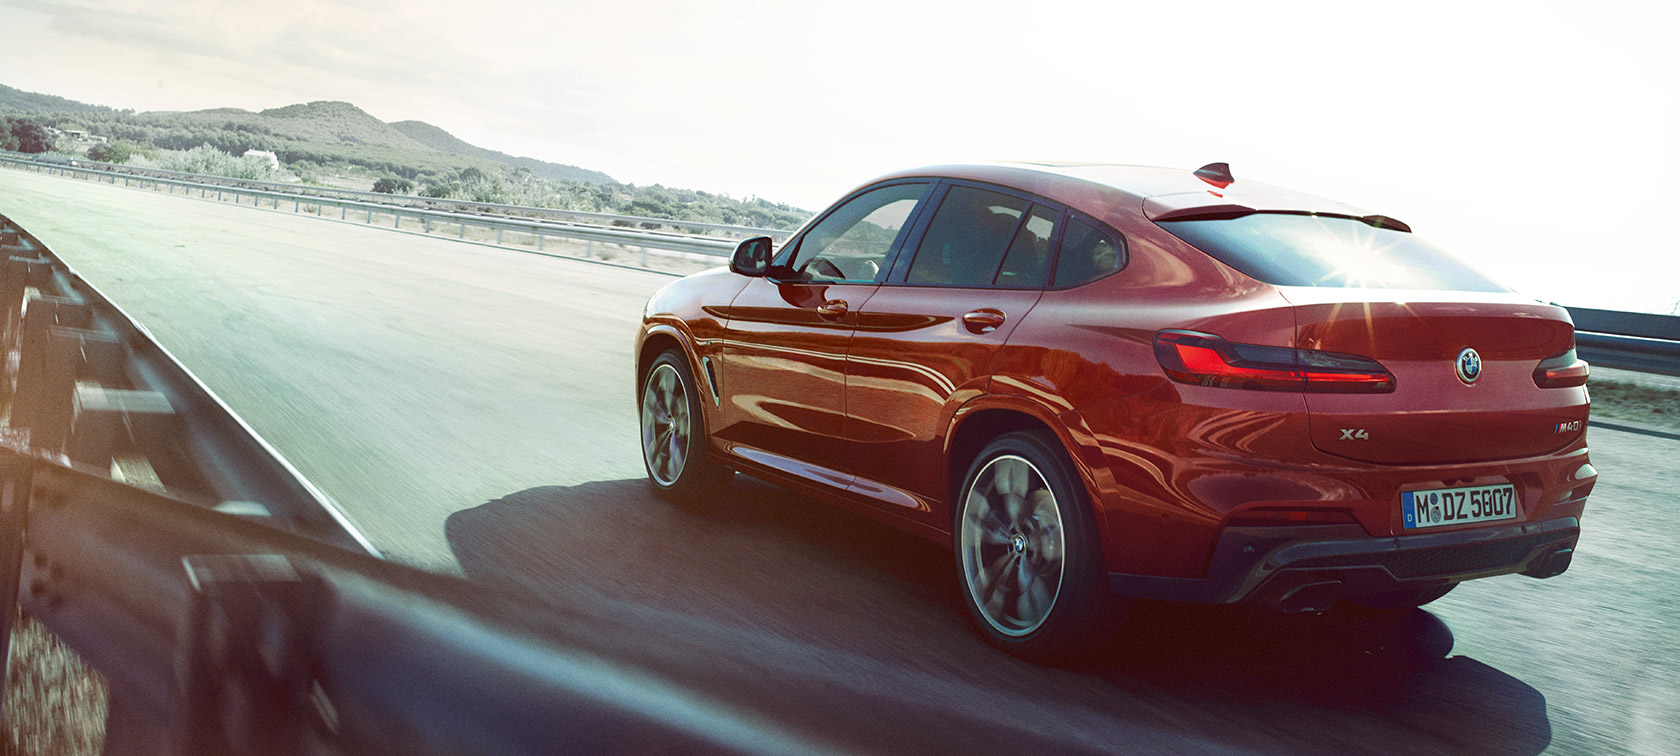 The new BMW X4.